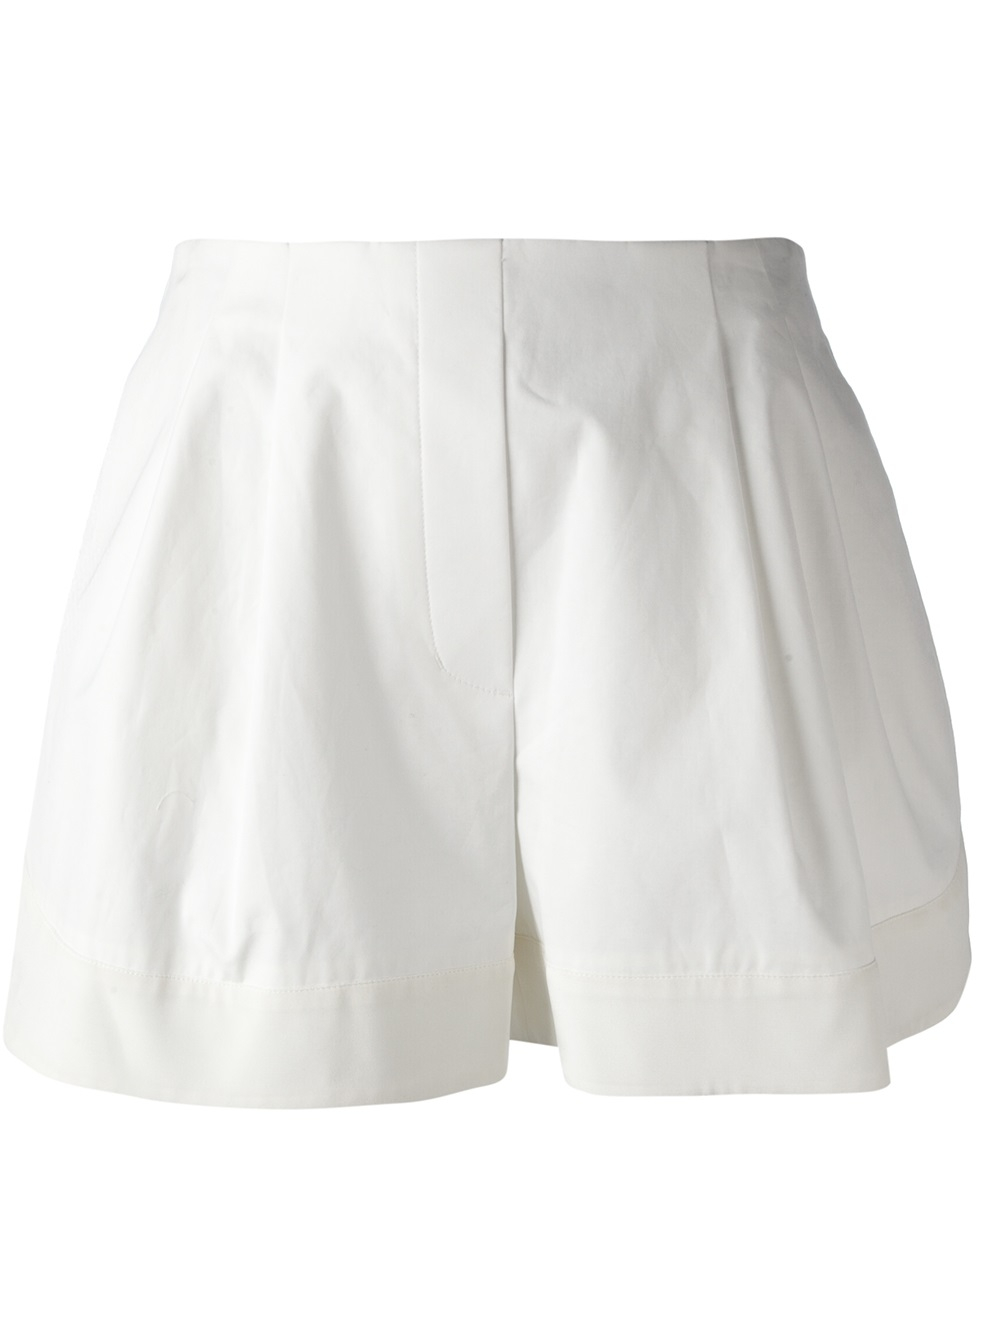 3.1 phillip lim Loose Fit Shorts in White | Lyst